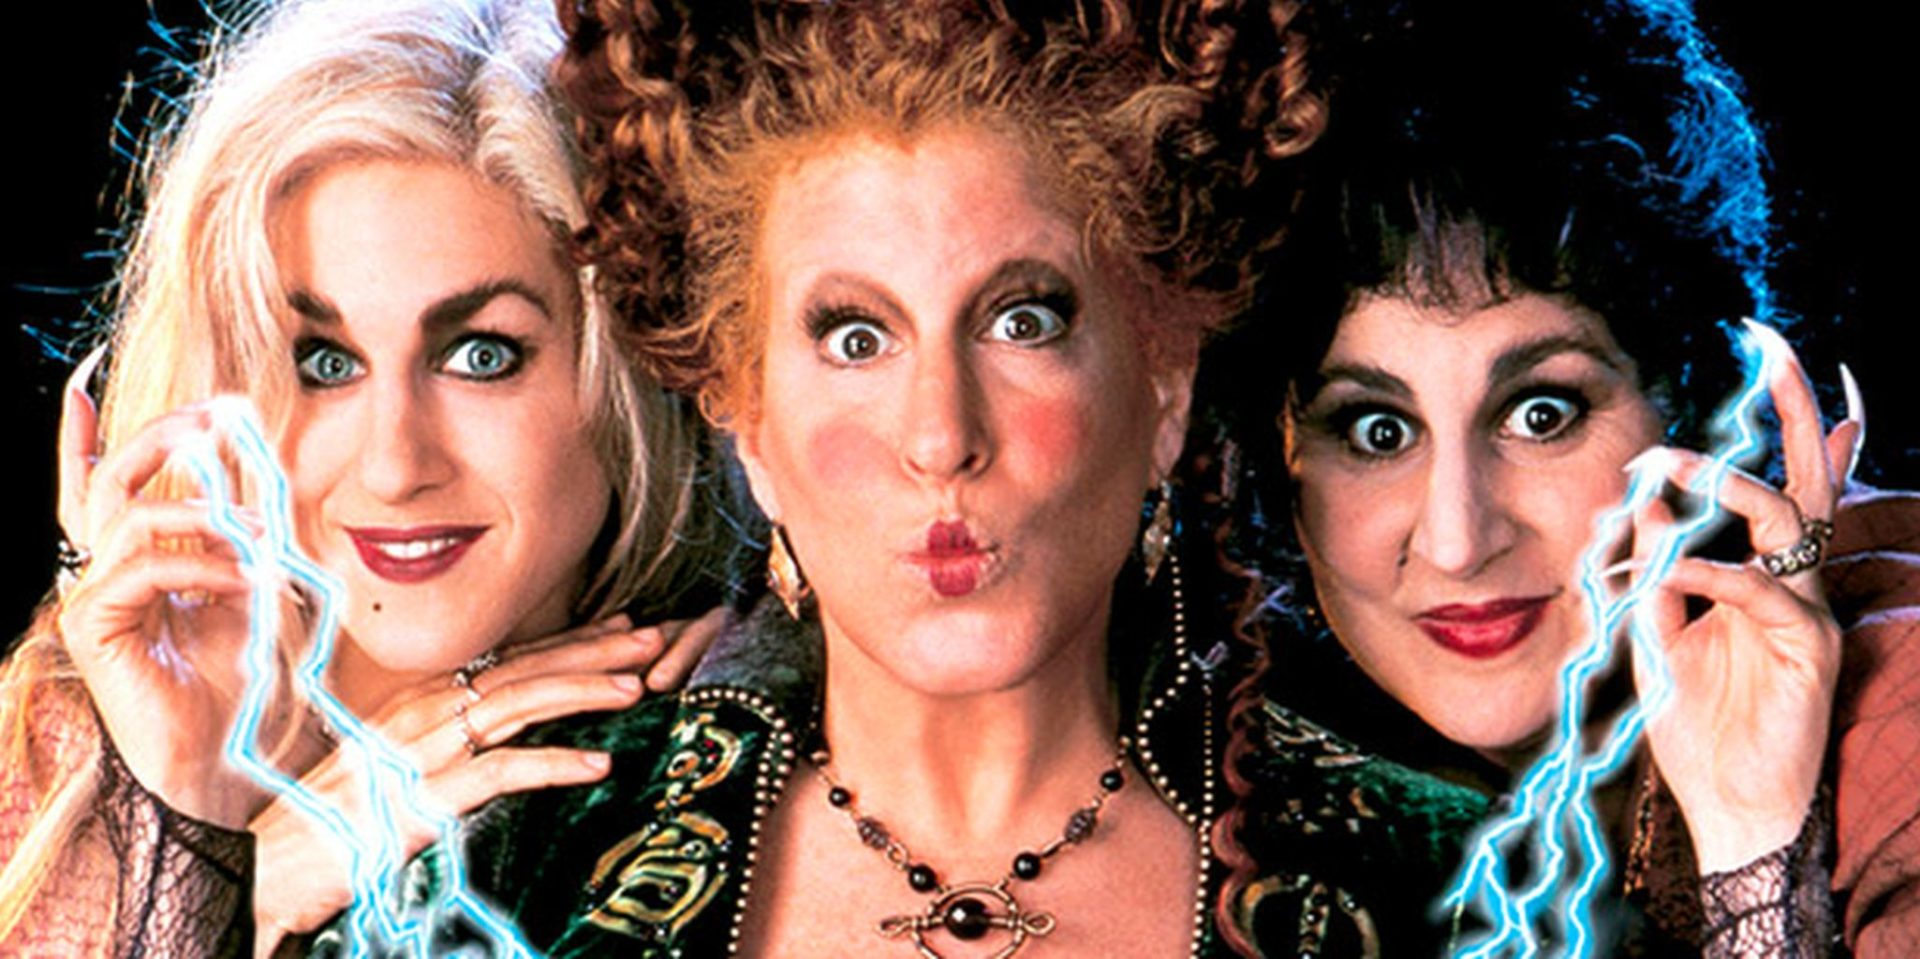 Hocus Pocus Sequel | Beyond The Box Set | Best Movie Podcasts